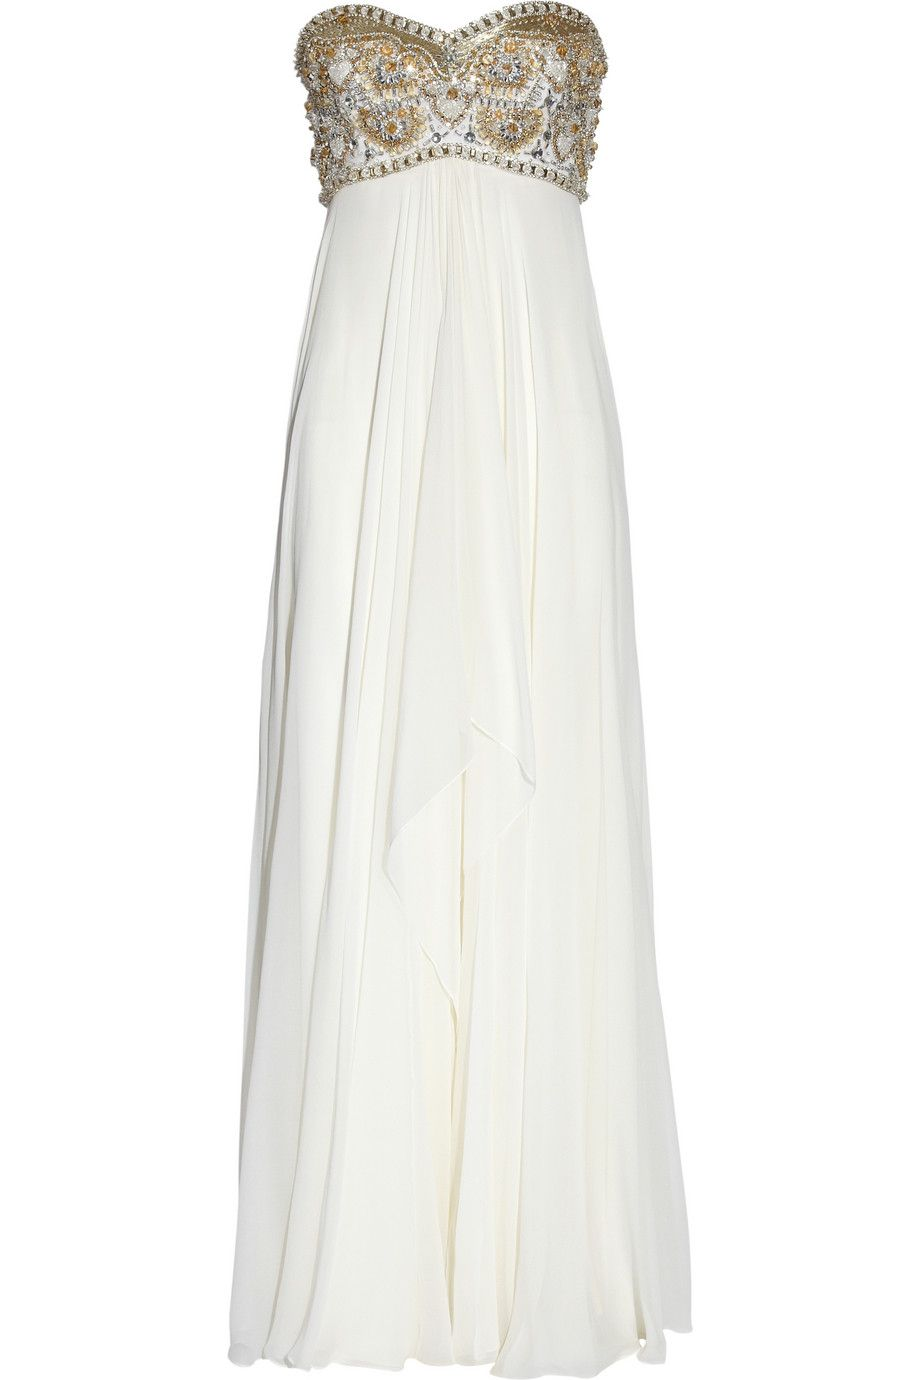 Marchesa chiffon beaded gown boho wedding dress wedding dress